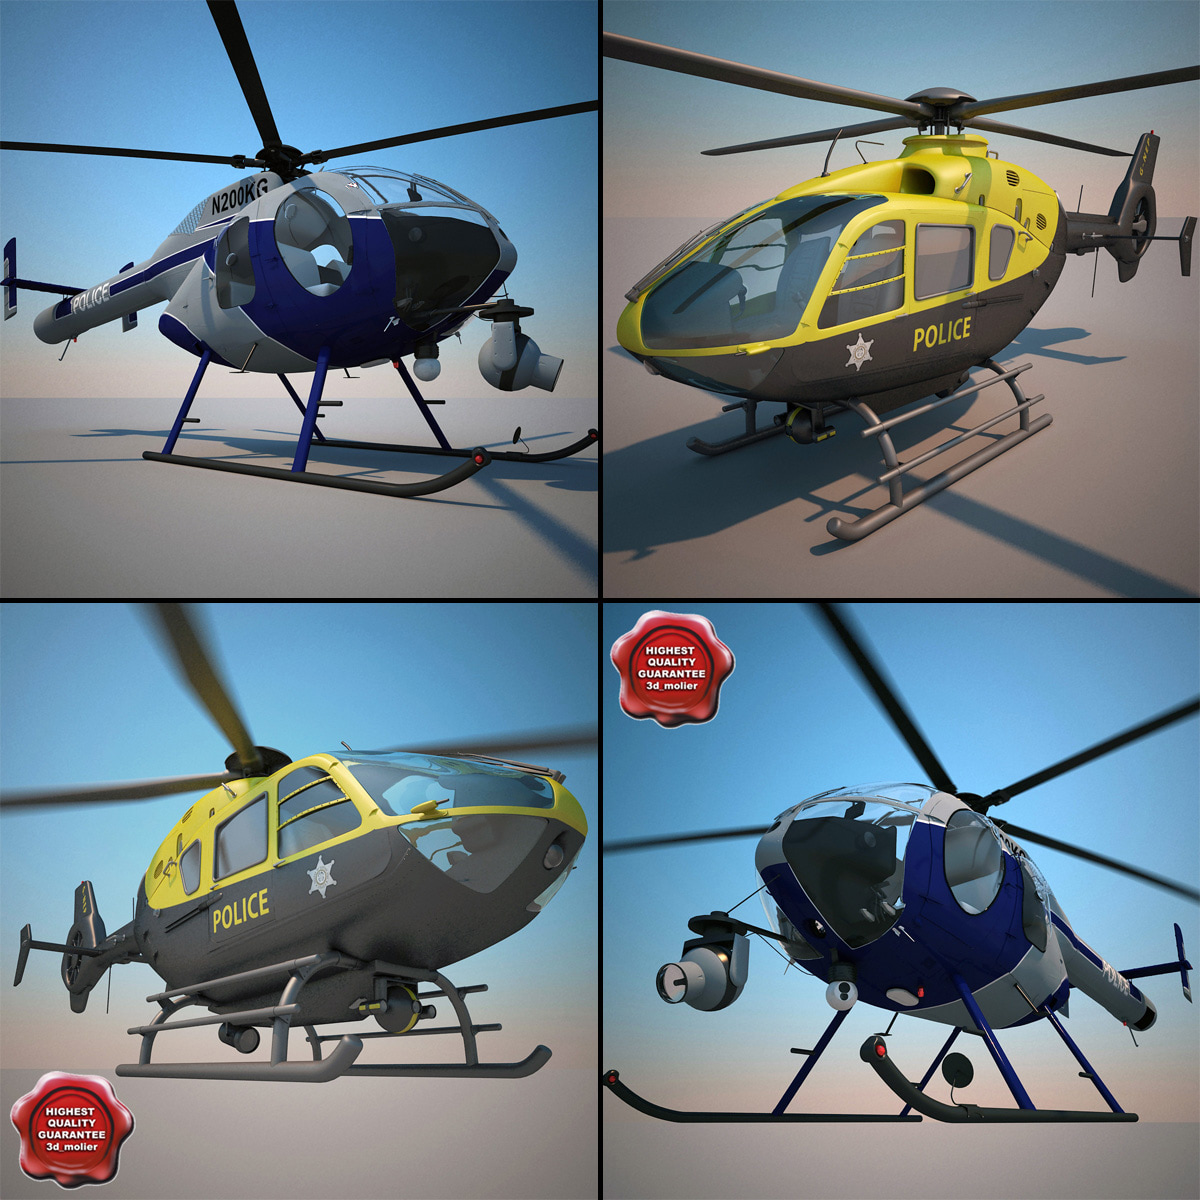 Police_Helicopters_Collection_00.jpg